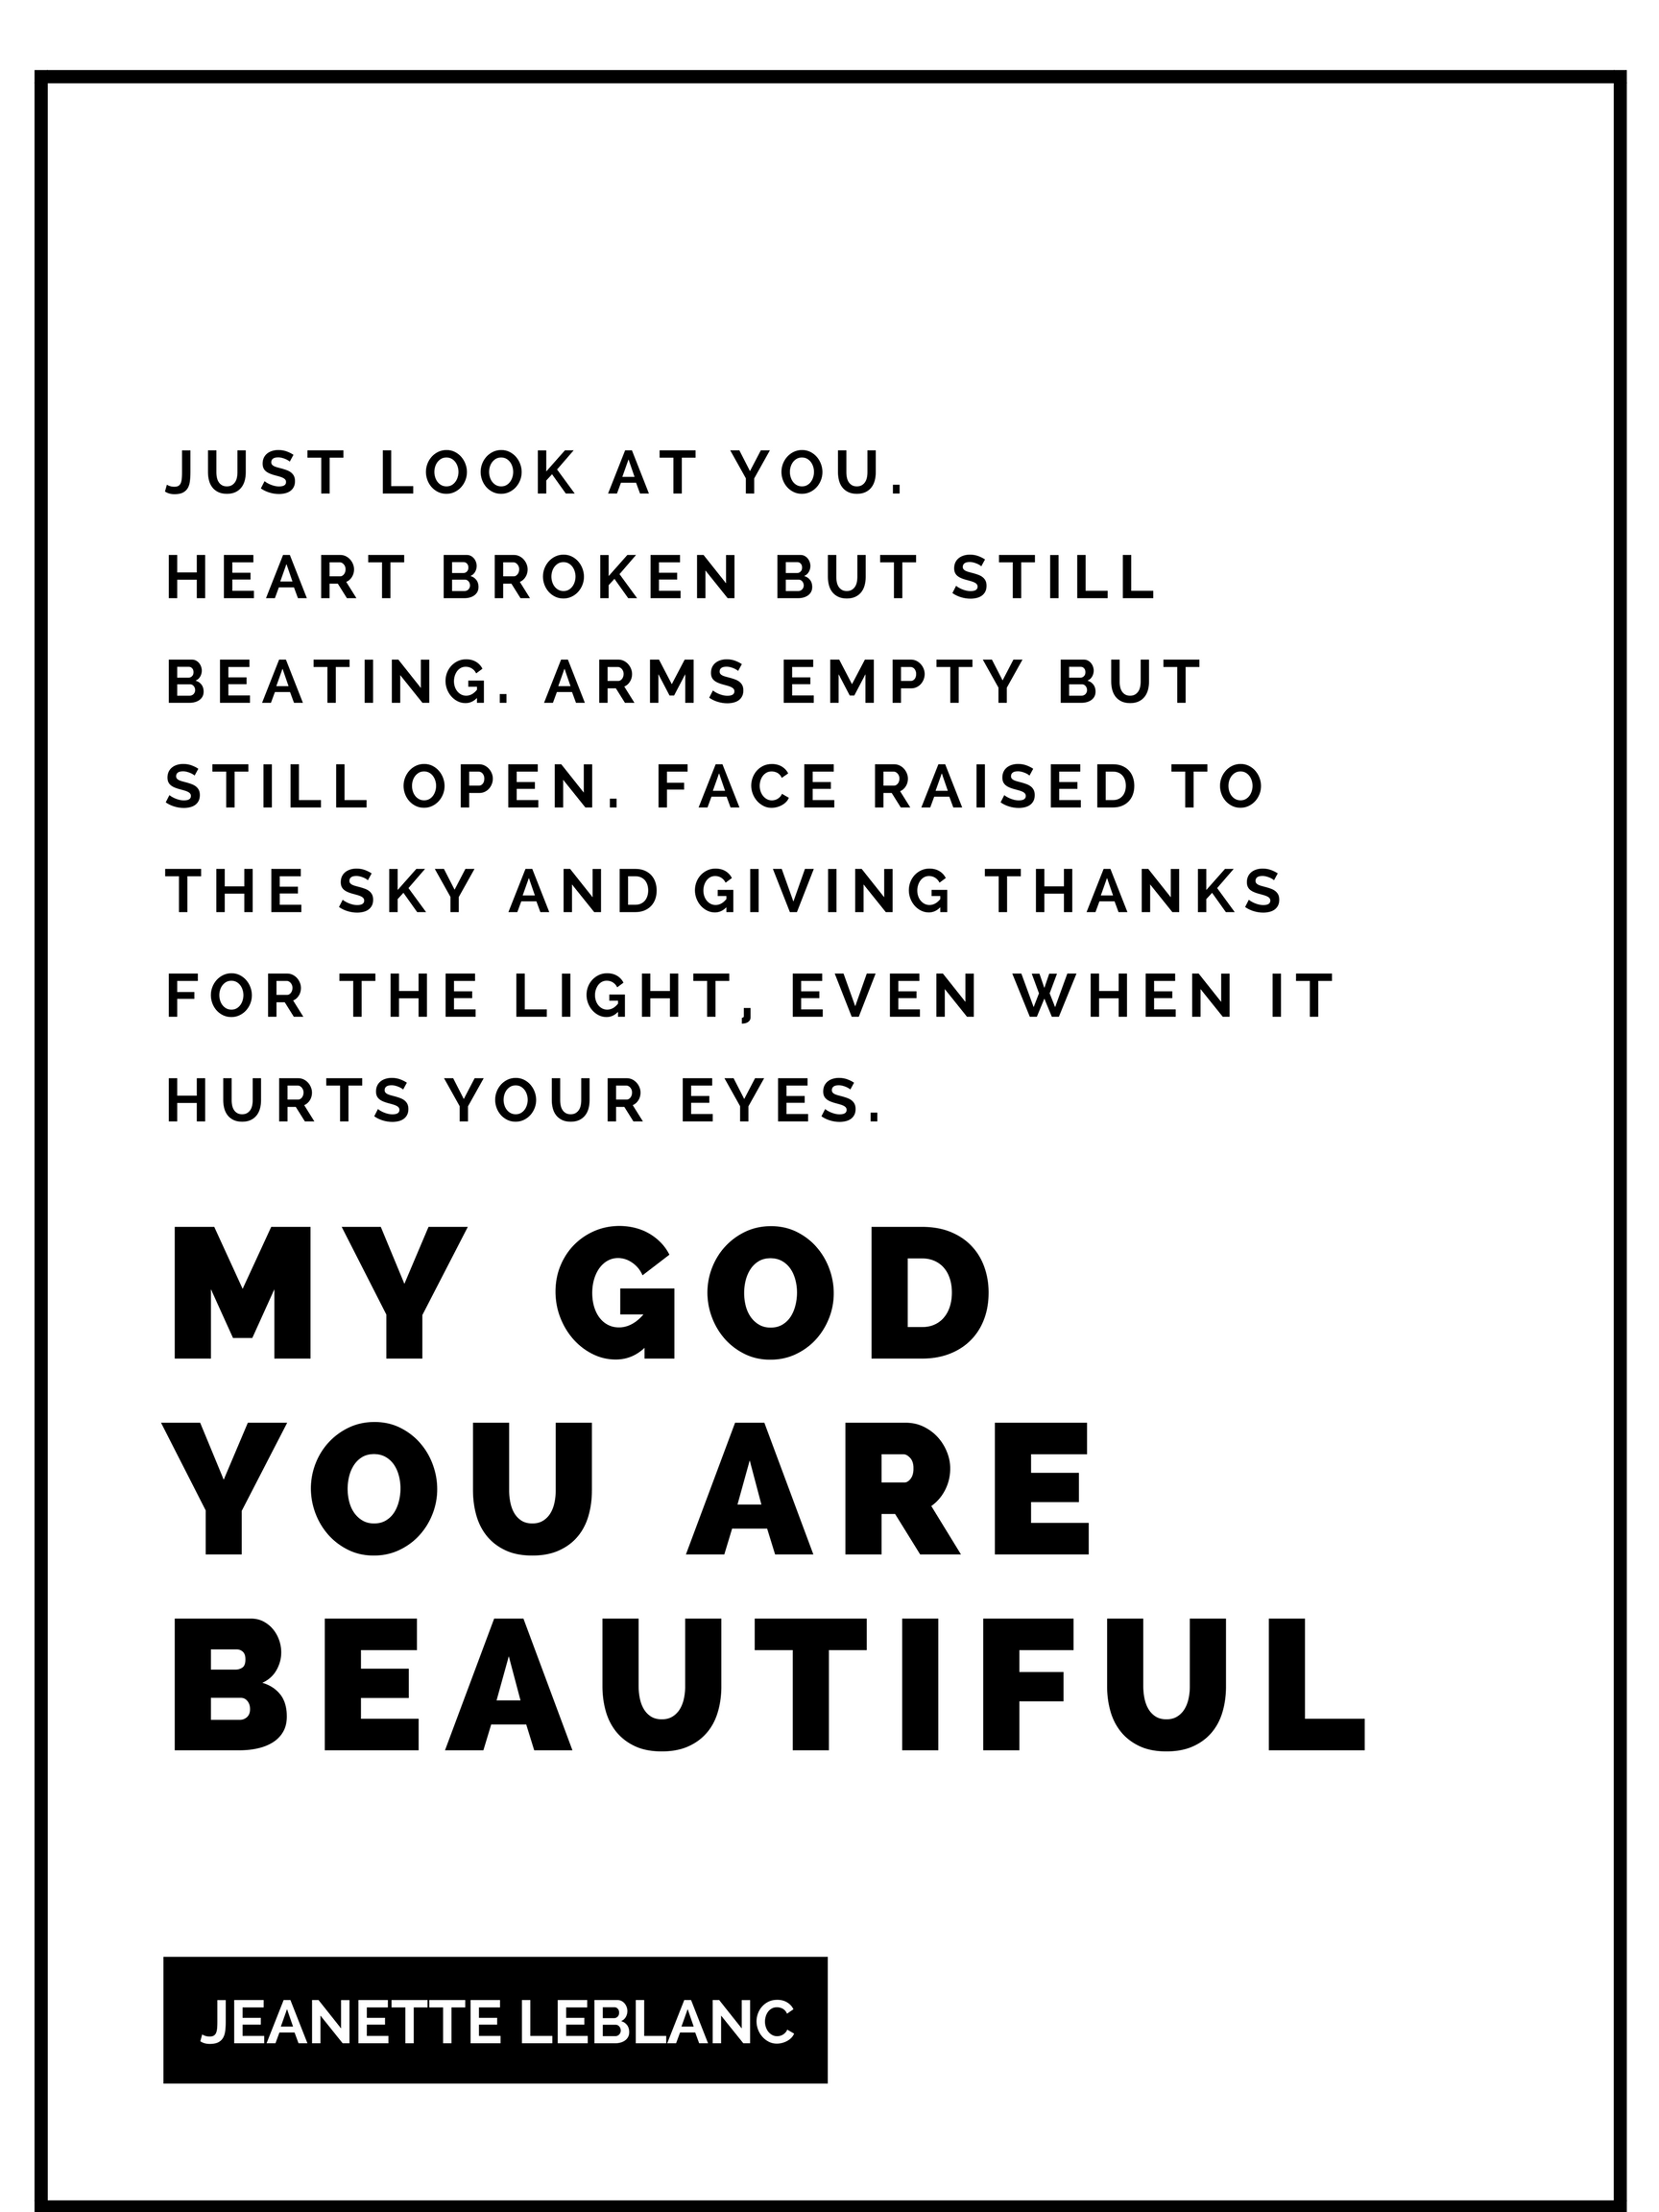 My God You Are Beautiful Quote by Jeanette LeBlanc